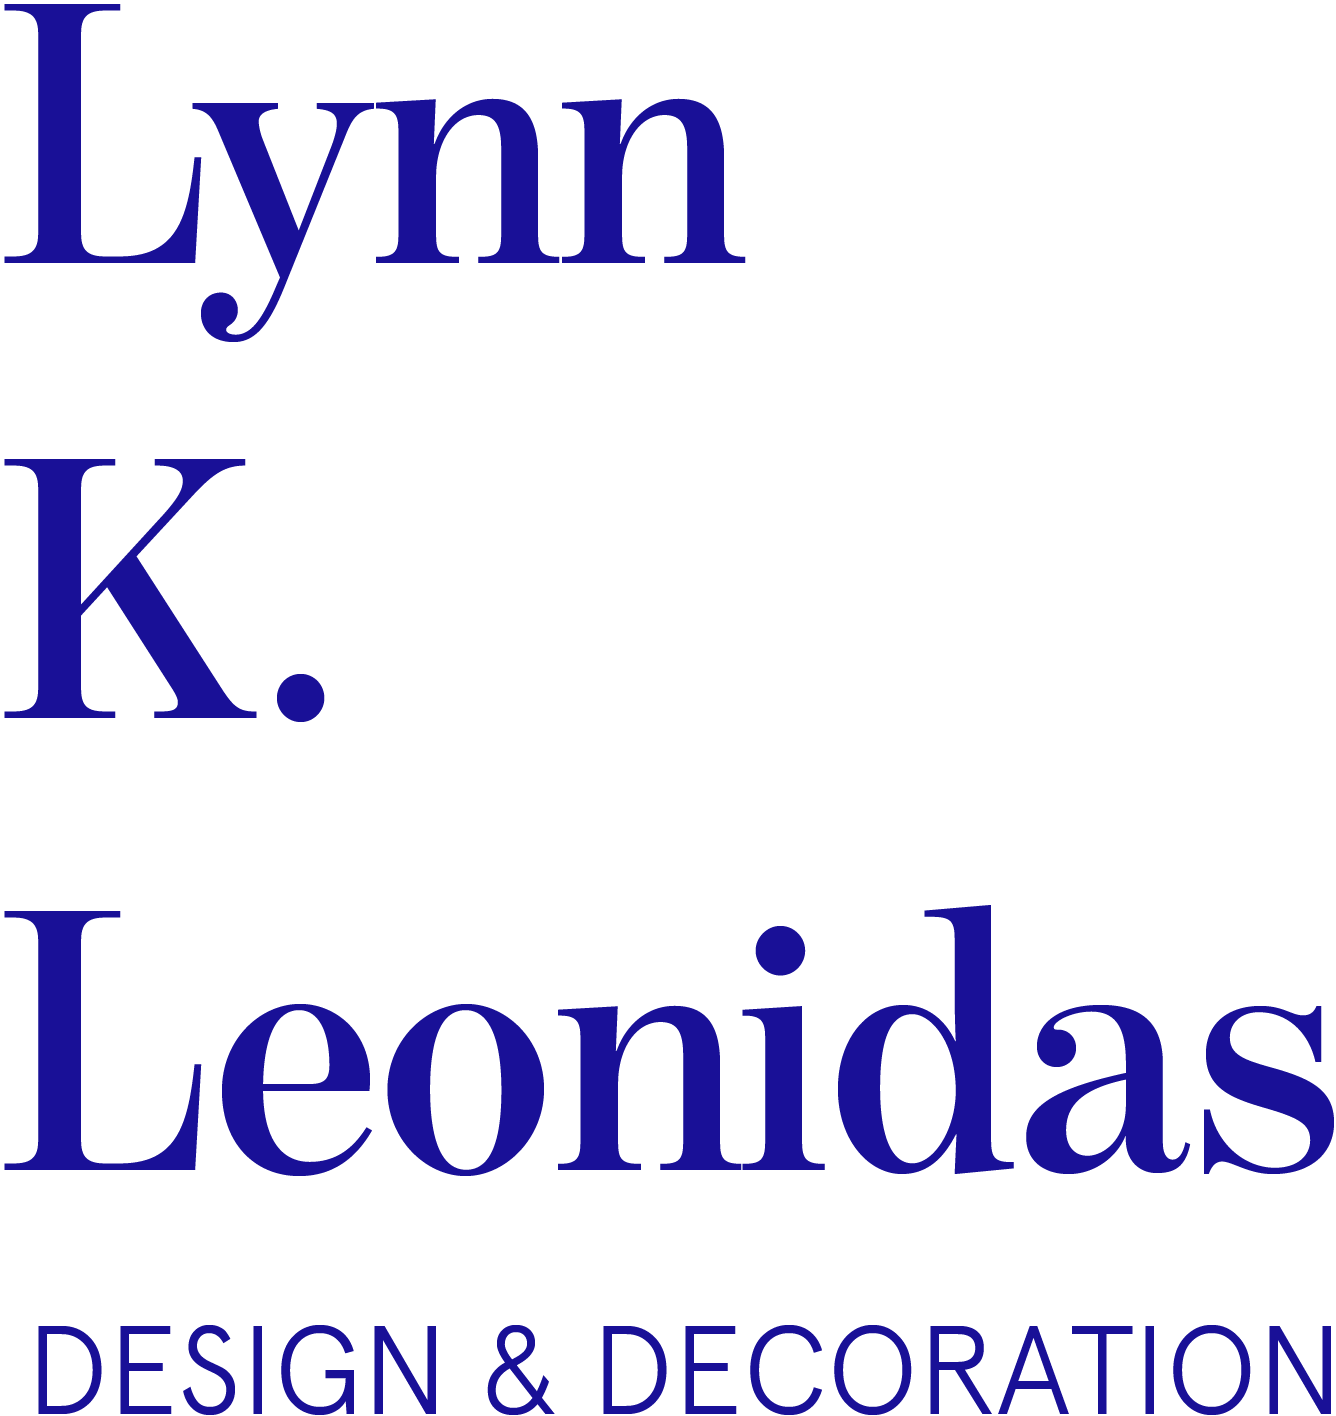 Lynn K. Leonidas | Design & Decoration